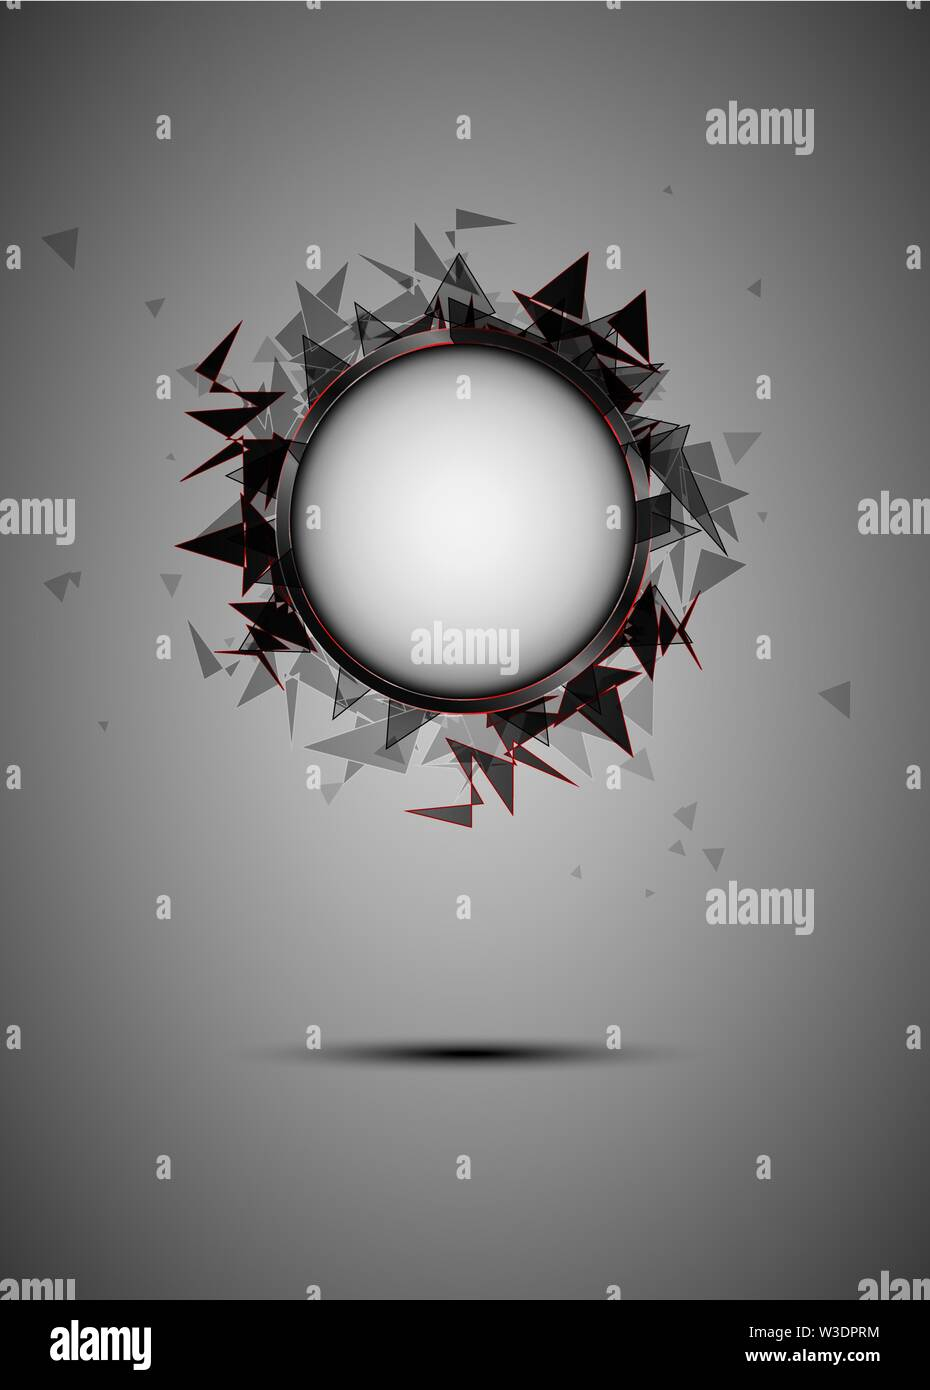 Abstract explosion of black glass. Background illustration. - Stock Image